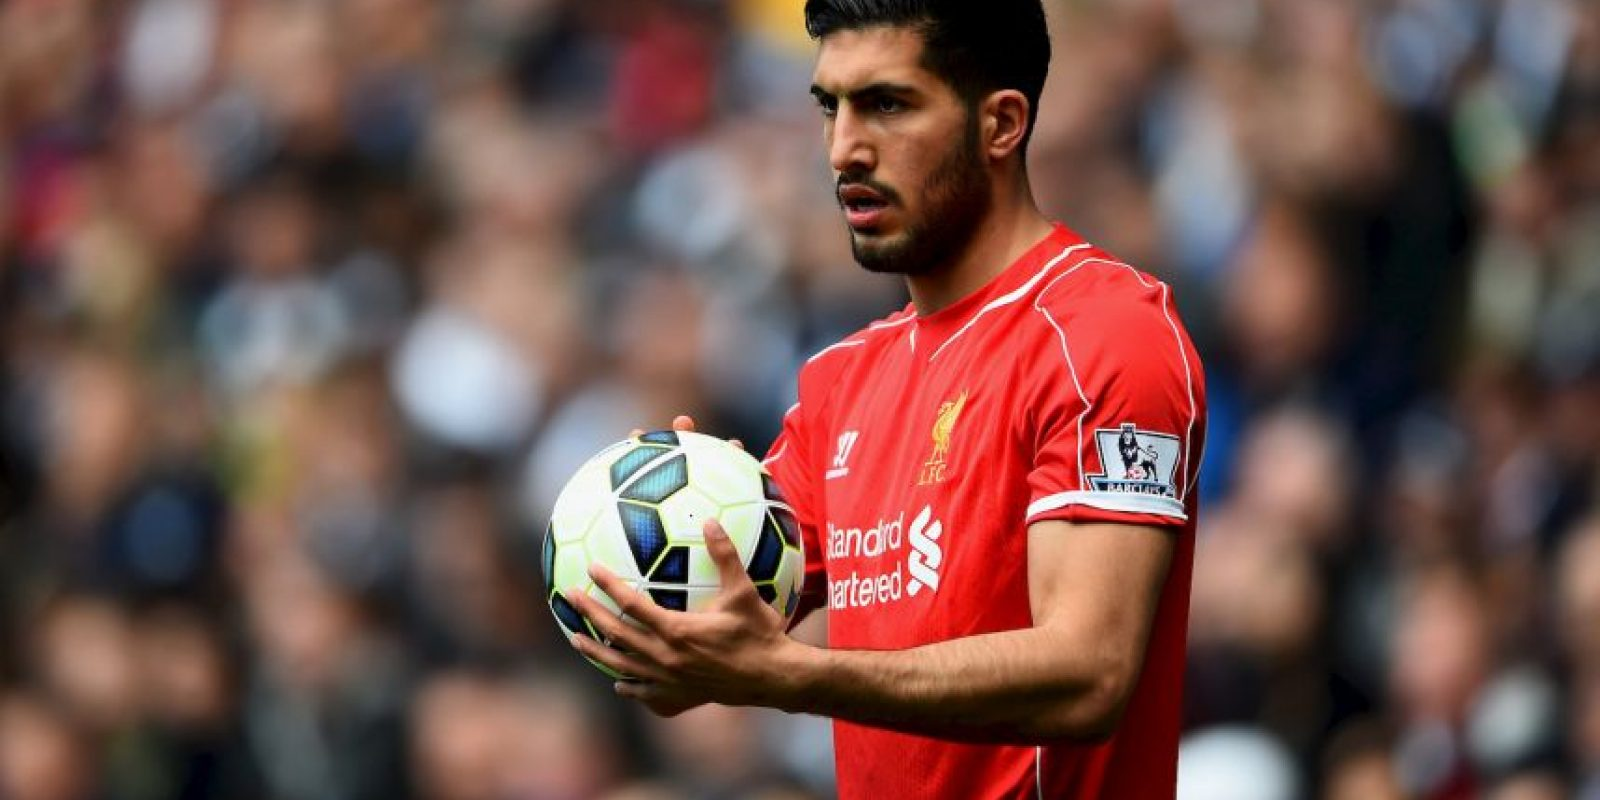 15. Emre Can / Liverpool / Alemania / 21 años / Mediocampista defensivo Foto: Getty Images